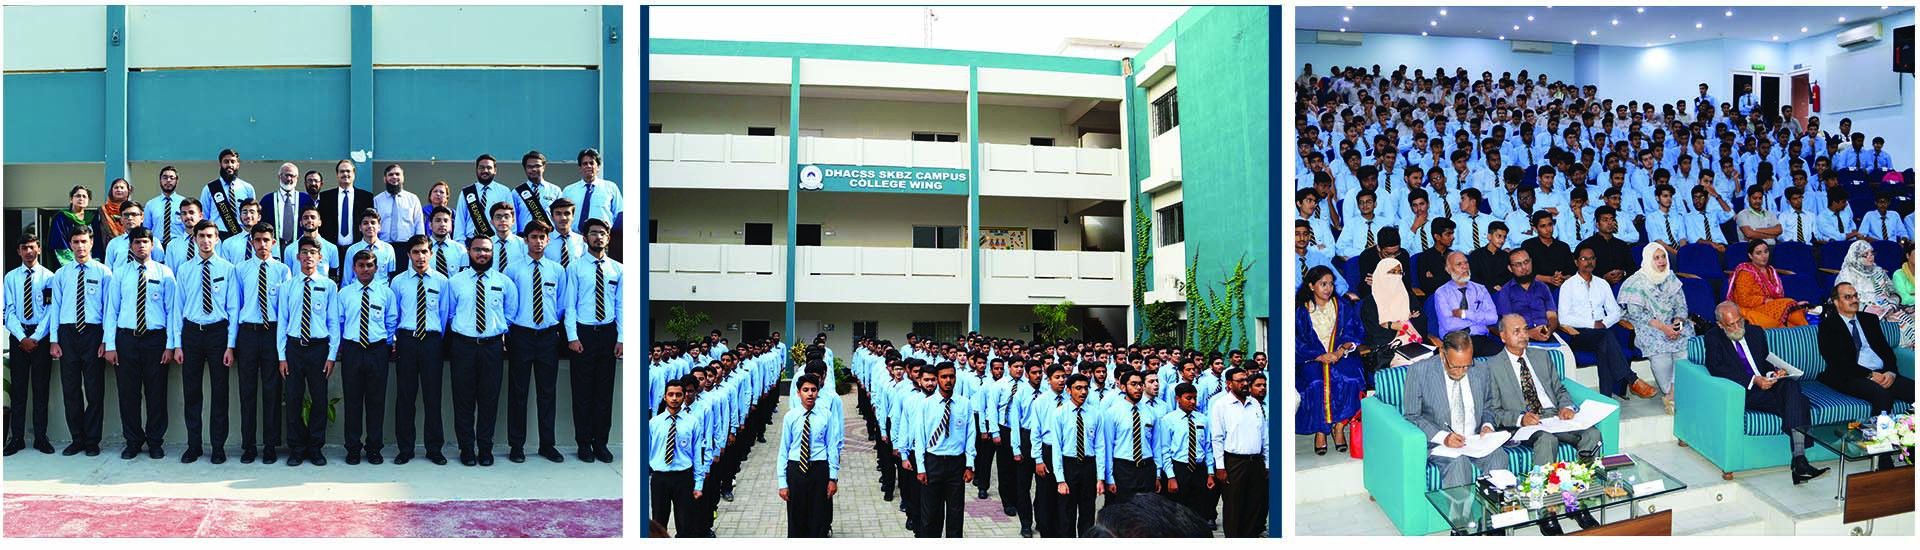 Welcome to DHACSS SKBZ College